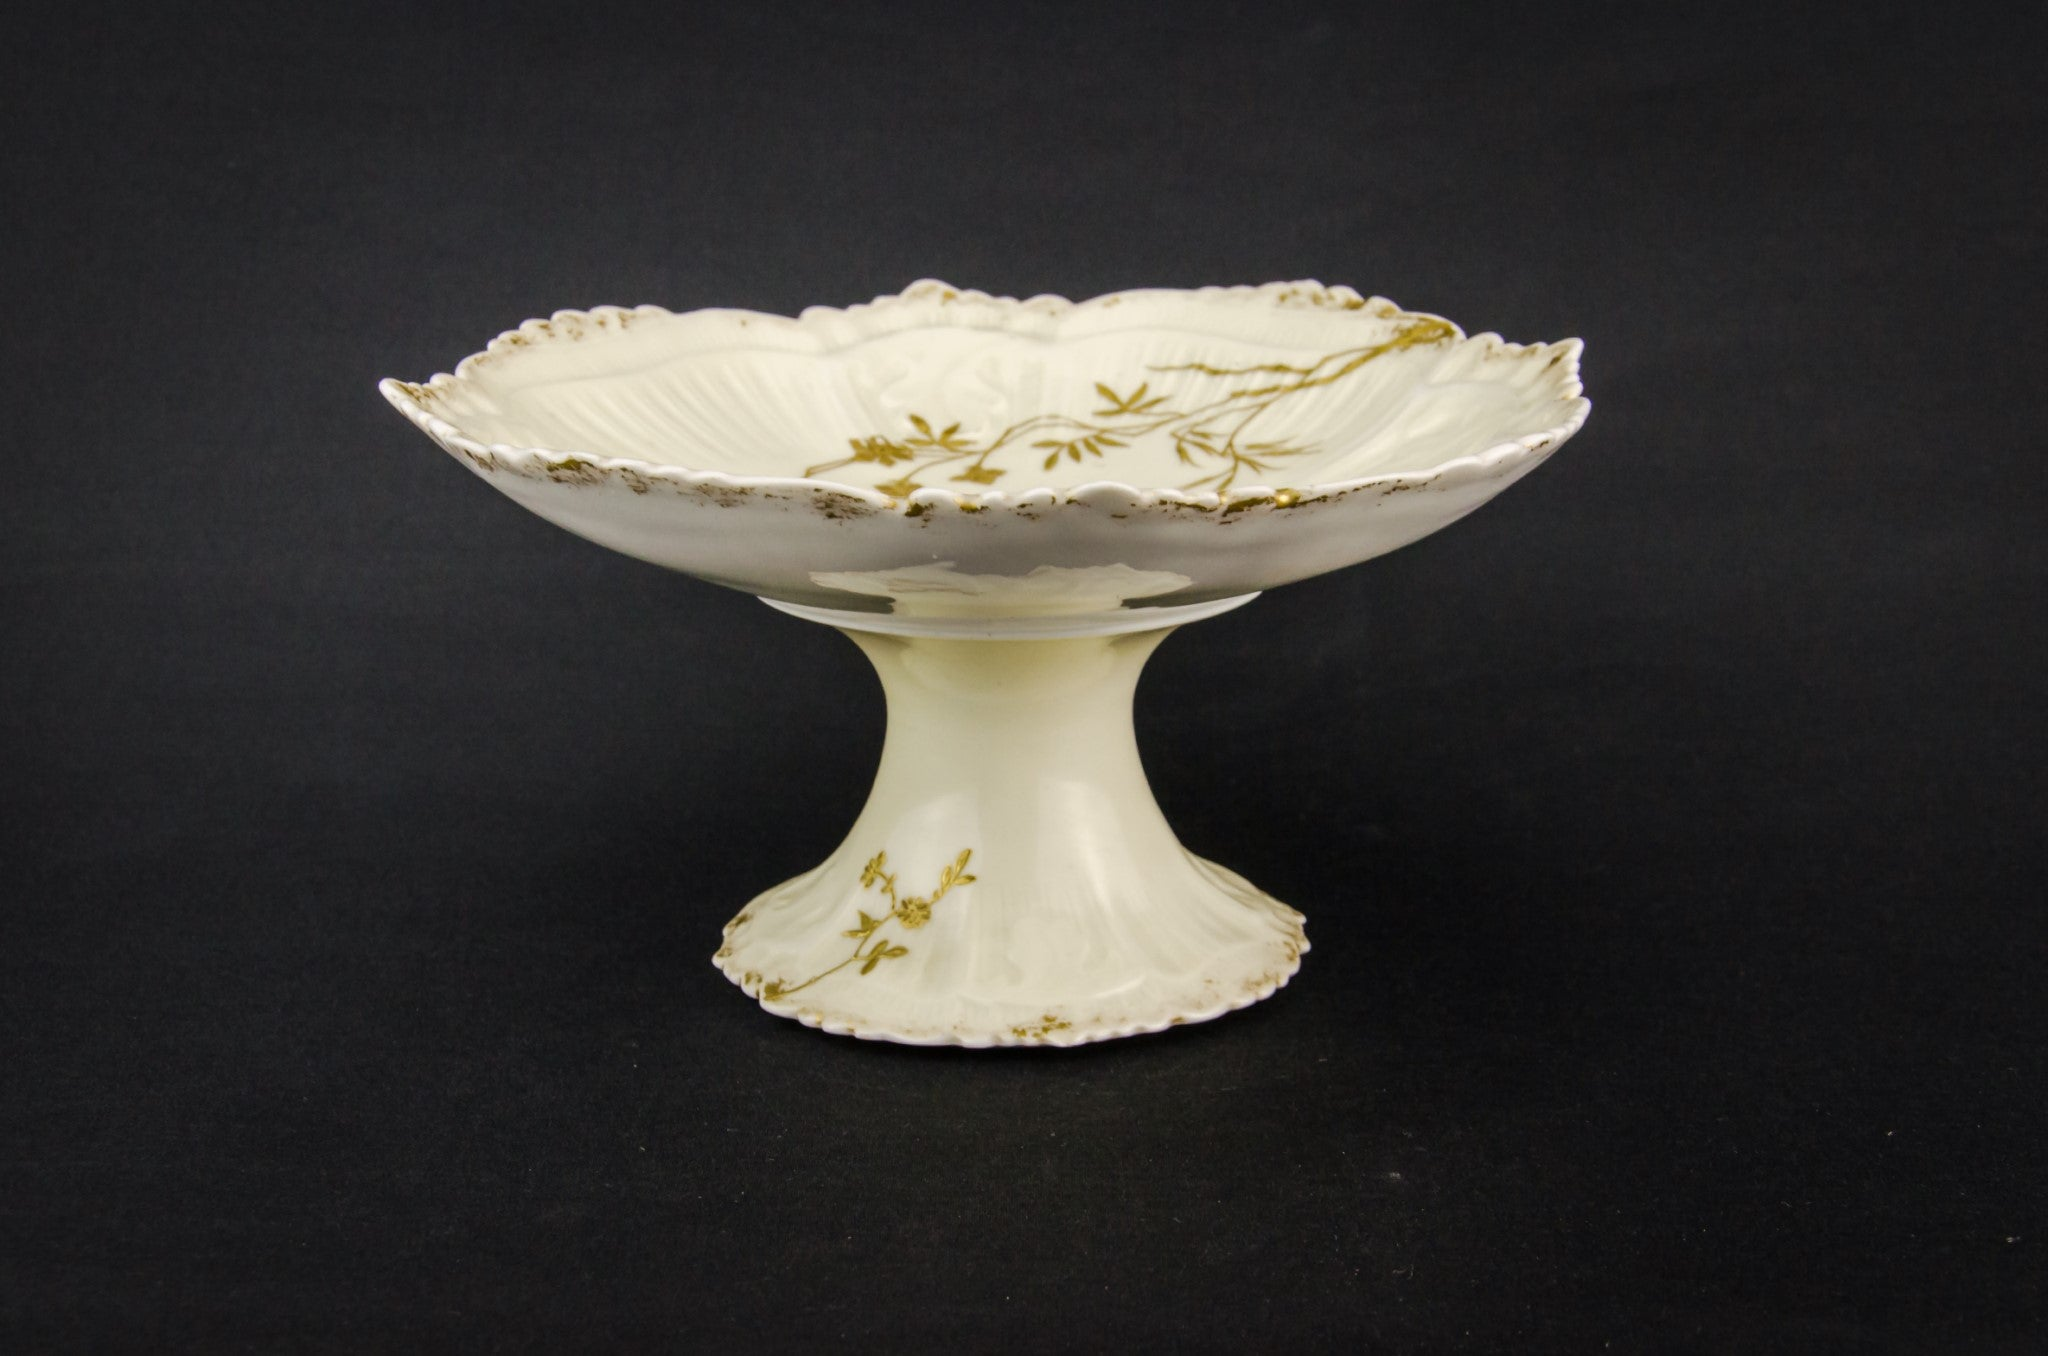 Gilded serving stem bowl